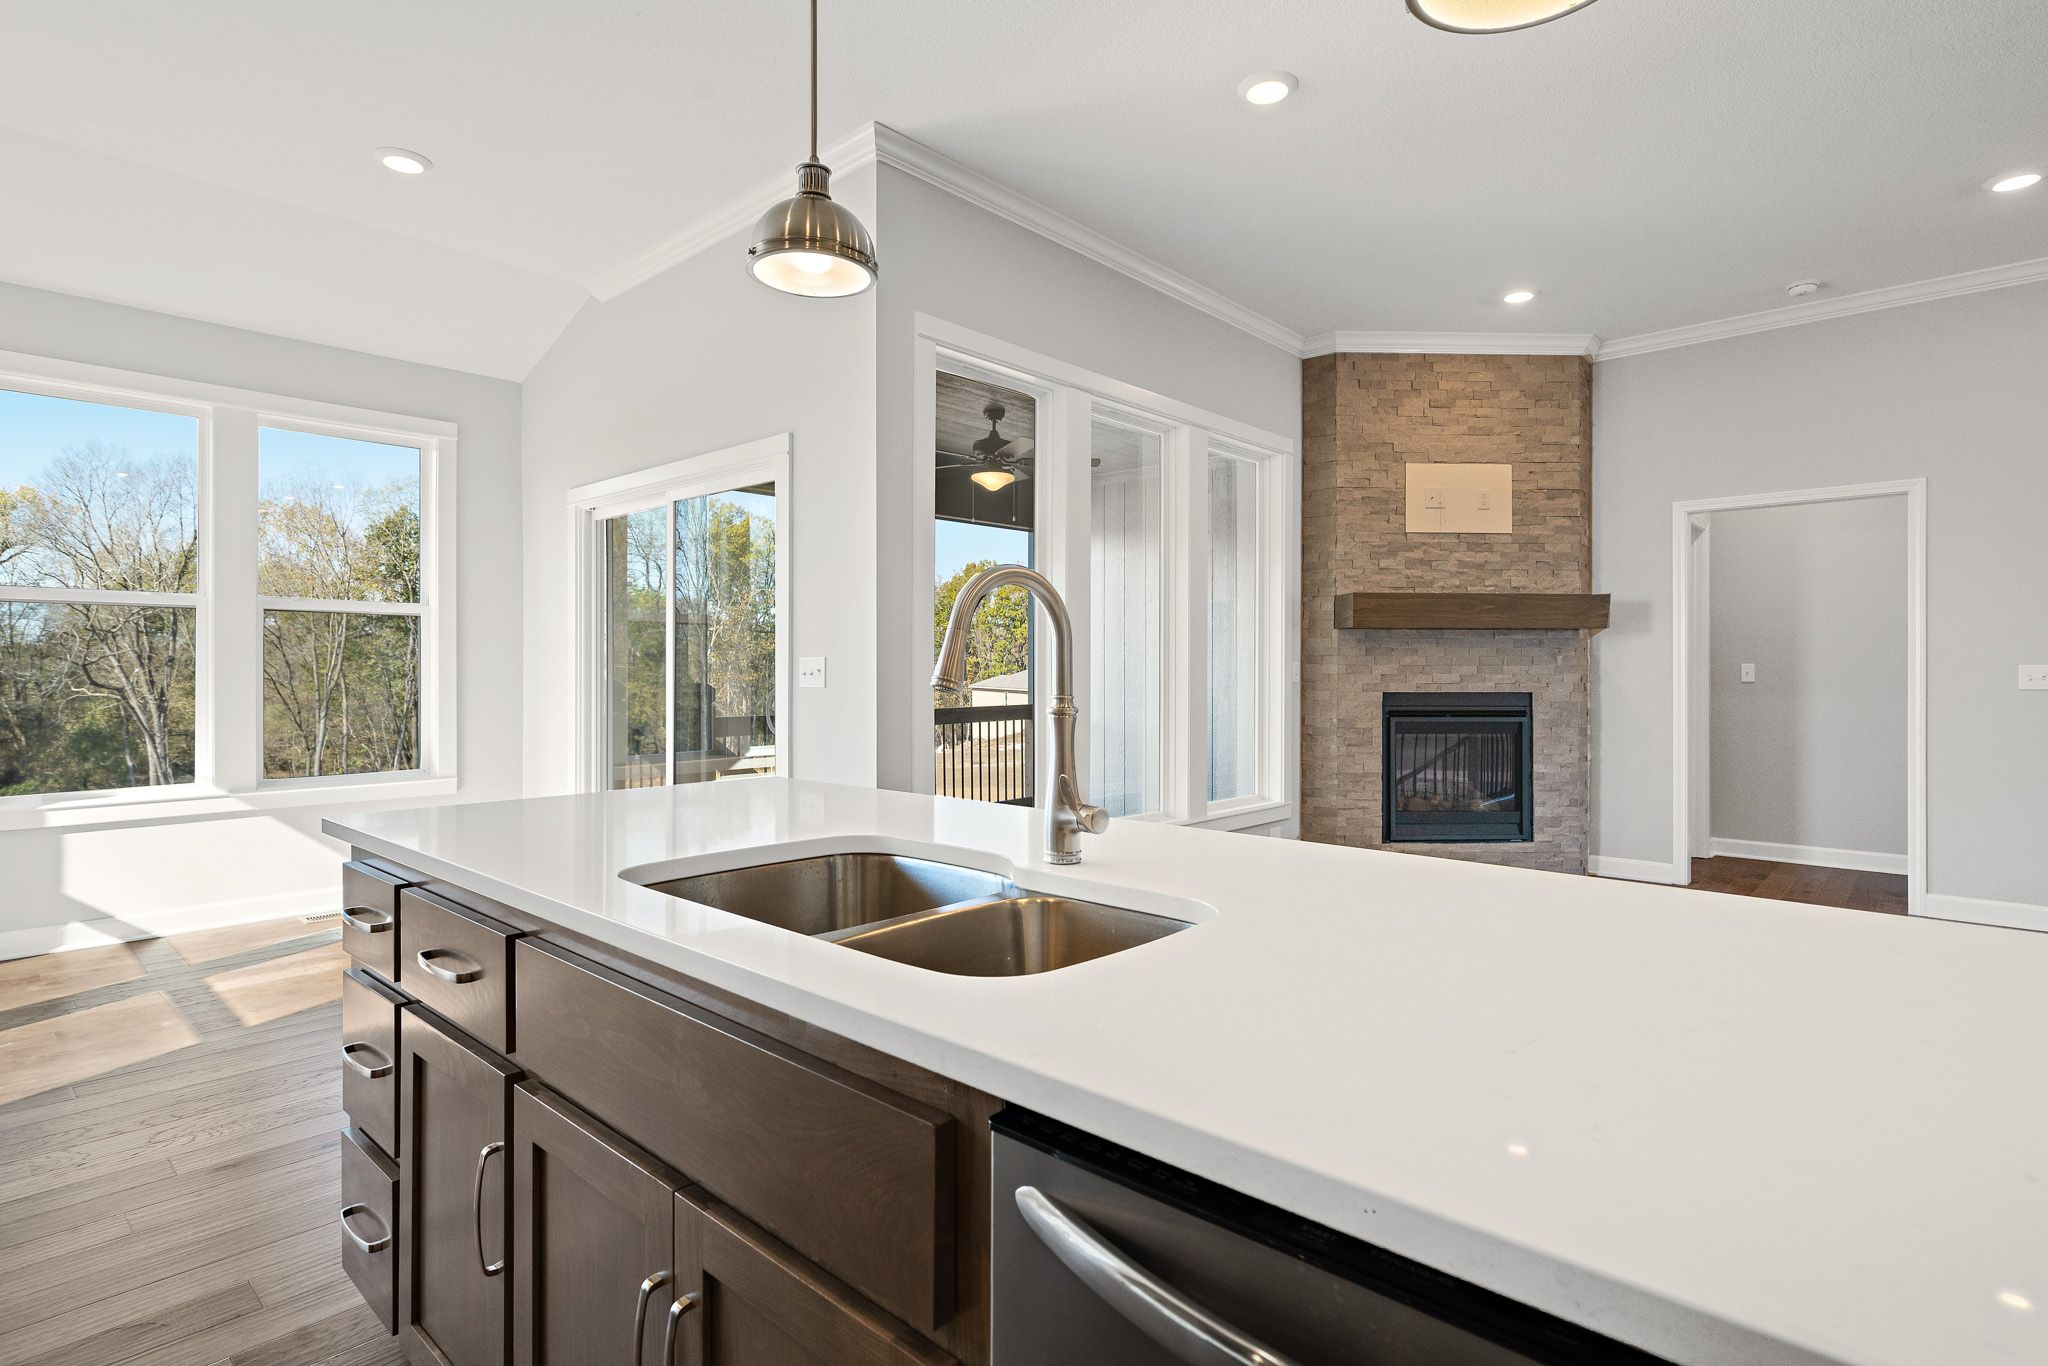 Kitchen featured in the Somerset - Care Free By Summit Homes in Kansas City, MO